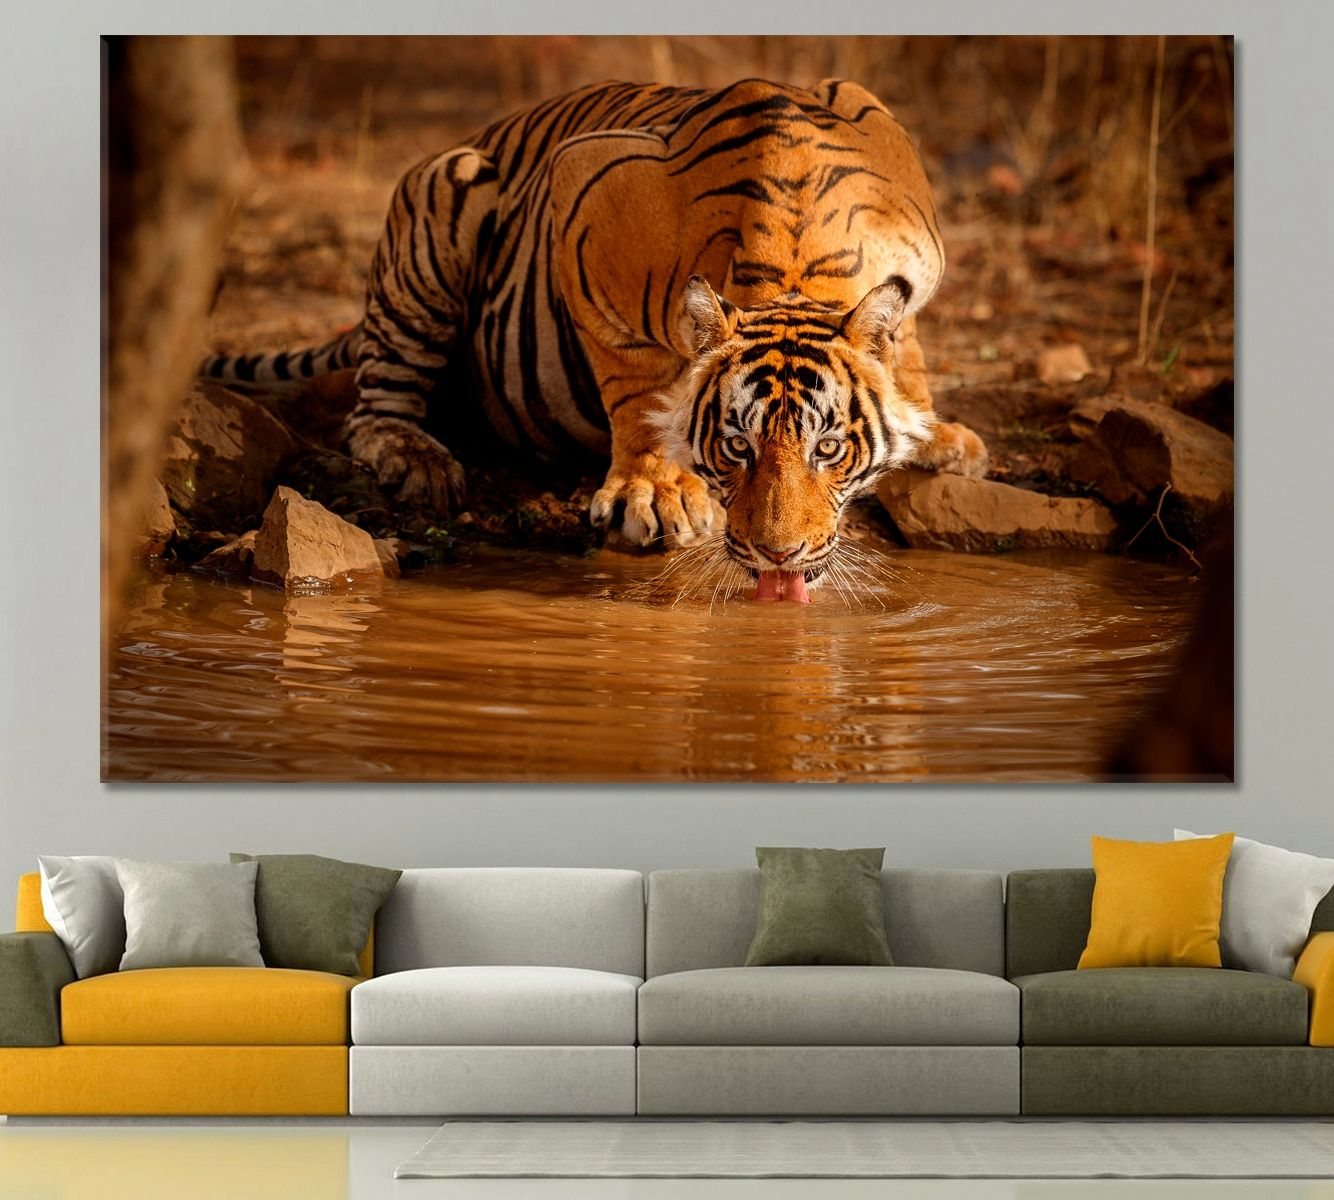 Tiger In The Nature Habitat India Wall Decor Abstract Wall Art